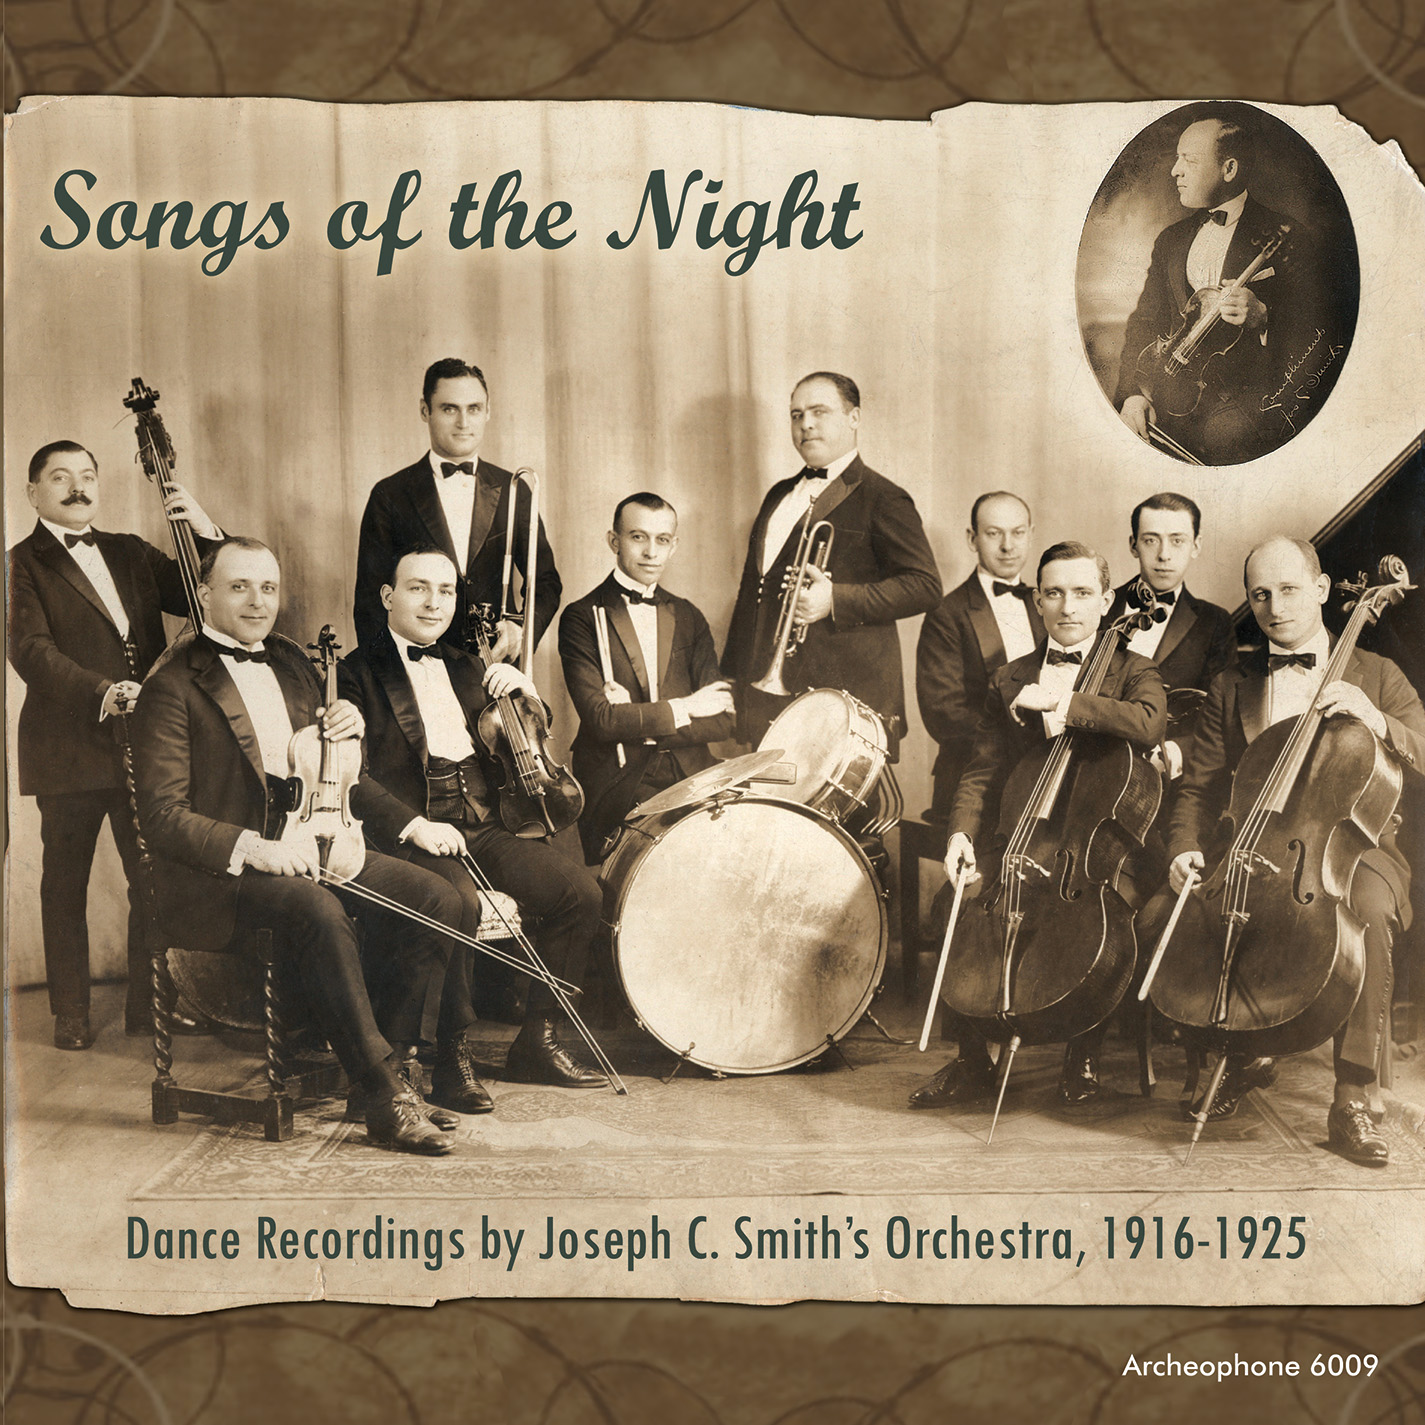 MUSIC NEWS : Archeophone Records Set to Reissue Seminal 1916-1925 Works by Virtuoso Bandleader Joseph C. Smith on July 29